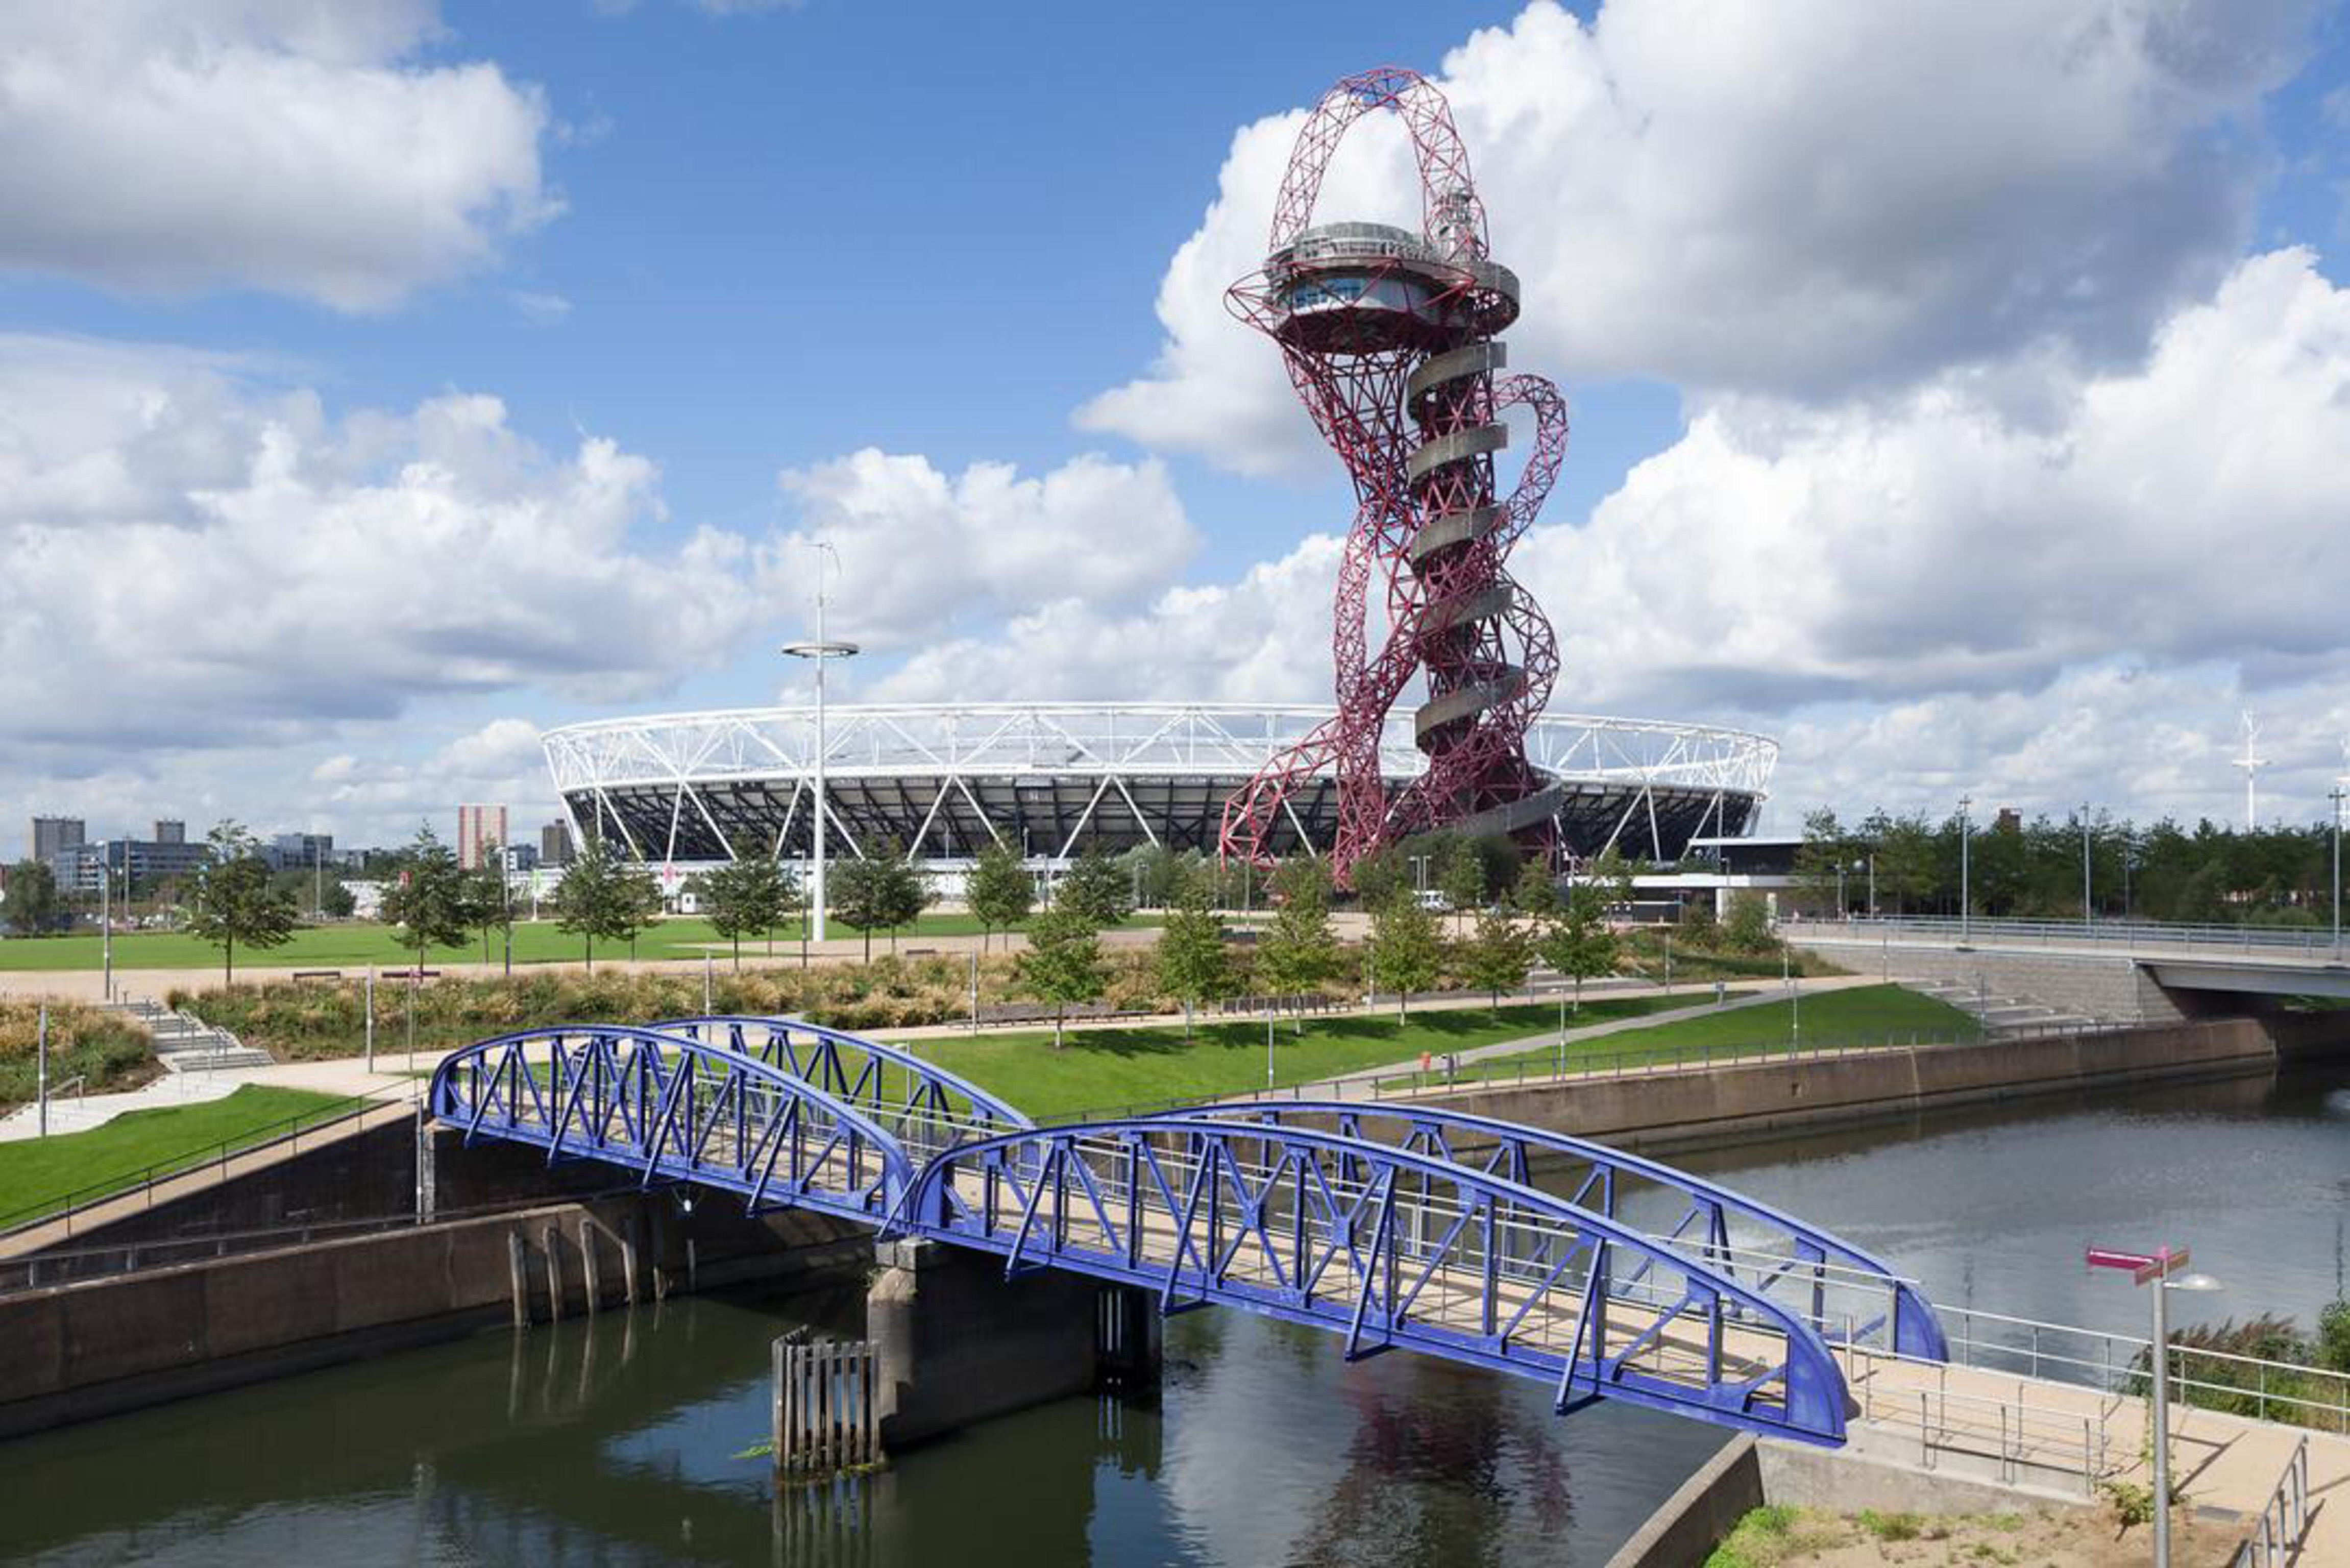 Photo of the London Olympic park, including the ArcelorMittal Orbit tower